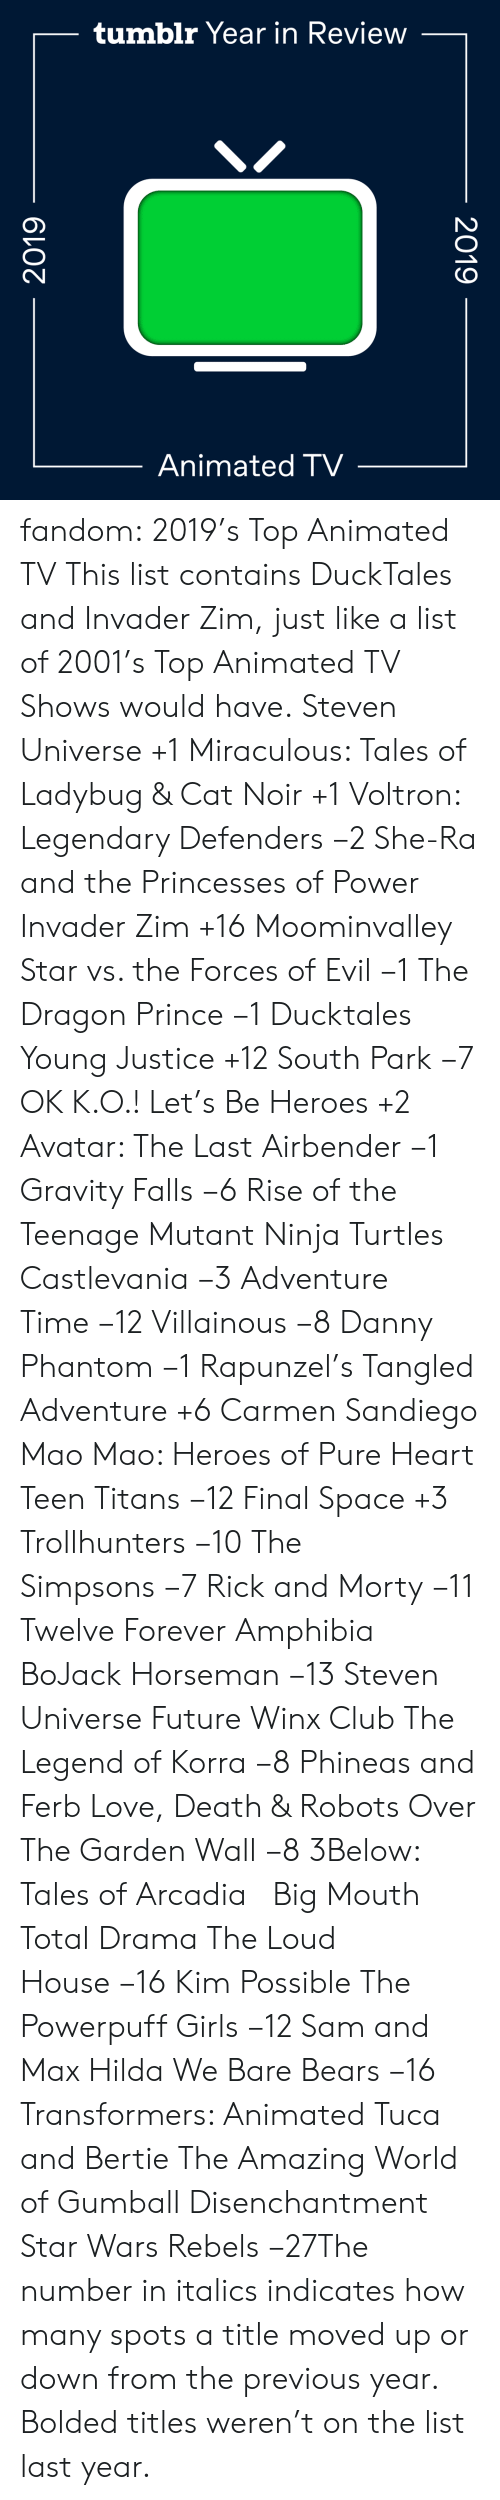 park: tumblr Year in Review  Animated TV  2019  2019 fandom:  2019's Top Animated TV  This list contains DuckTales and Invader Zim, just like a list of 2001's Top Animated TV Shows would have.  Steven Universe +1  Miraculous: Tales of Ladybug & Cat Noir +1  Voltron: Legendary Defenders −2  She-Ra and the Princesses of Power   Invader Zim +16  Moominvalley  Star vs. the Forces of Evil −1  The Dragon Prince −1  Ducktales  Young Justice +12  South Park −7  OK K.O.! Let's Be Heroes +2  Avatar: The Last Airbender −1  Gravity Falls −6  Rise of the Teenage Mutant Ninja Turtles  Castlevania −3  Adventure Time −12  Villainous −8  Danny Phantom −1  Rapunzel's Tangled Adventure +6  Carmen Sandiego  Mao Mao: Heroes of Pure Heart  Teen Titans −12  Final Space +3  Trollhunters −10  The Simpsons −7  Rick and Morty −11  Twelve Forever  Amphibia  BoJack Horseman −13  Steven Universe Future  Winx Club  The Legend of Korra −8  Phineas and Ferb  Love, Death & Robots  Over The Garden Wall −8  3Below: Tales of Arcadia    Big Mouth  Total Drama  The Loud House −16  Kim Possible  The Powerpuff Girls −12  Sam and Max  Hilda  We Bare Bears −16  Transformers: Animated  Tuca and Bertie  The Amazing World of Gumball  Disenchantment Star Wars Rebels −27The number in italics indicates how many spots a title moved up or down from the previous year. Bolded titles weren't on the list last year.